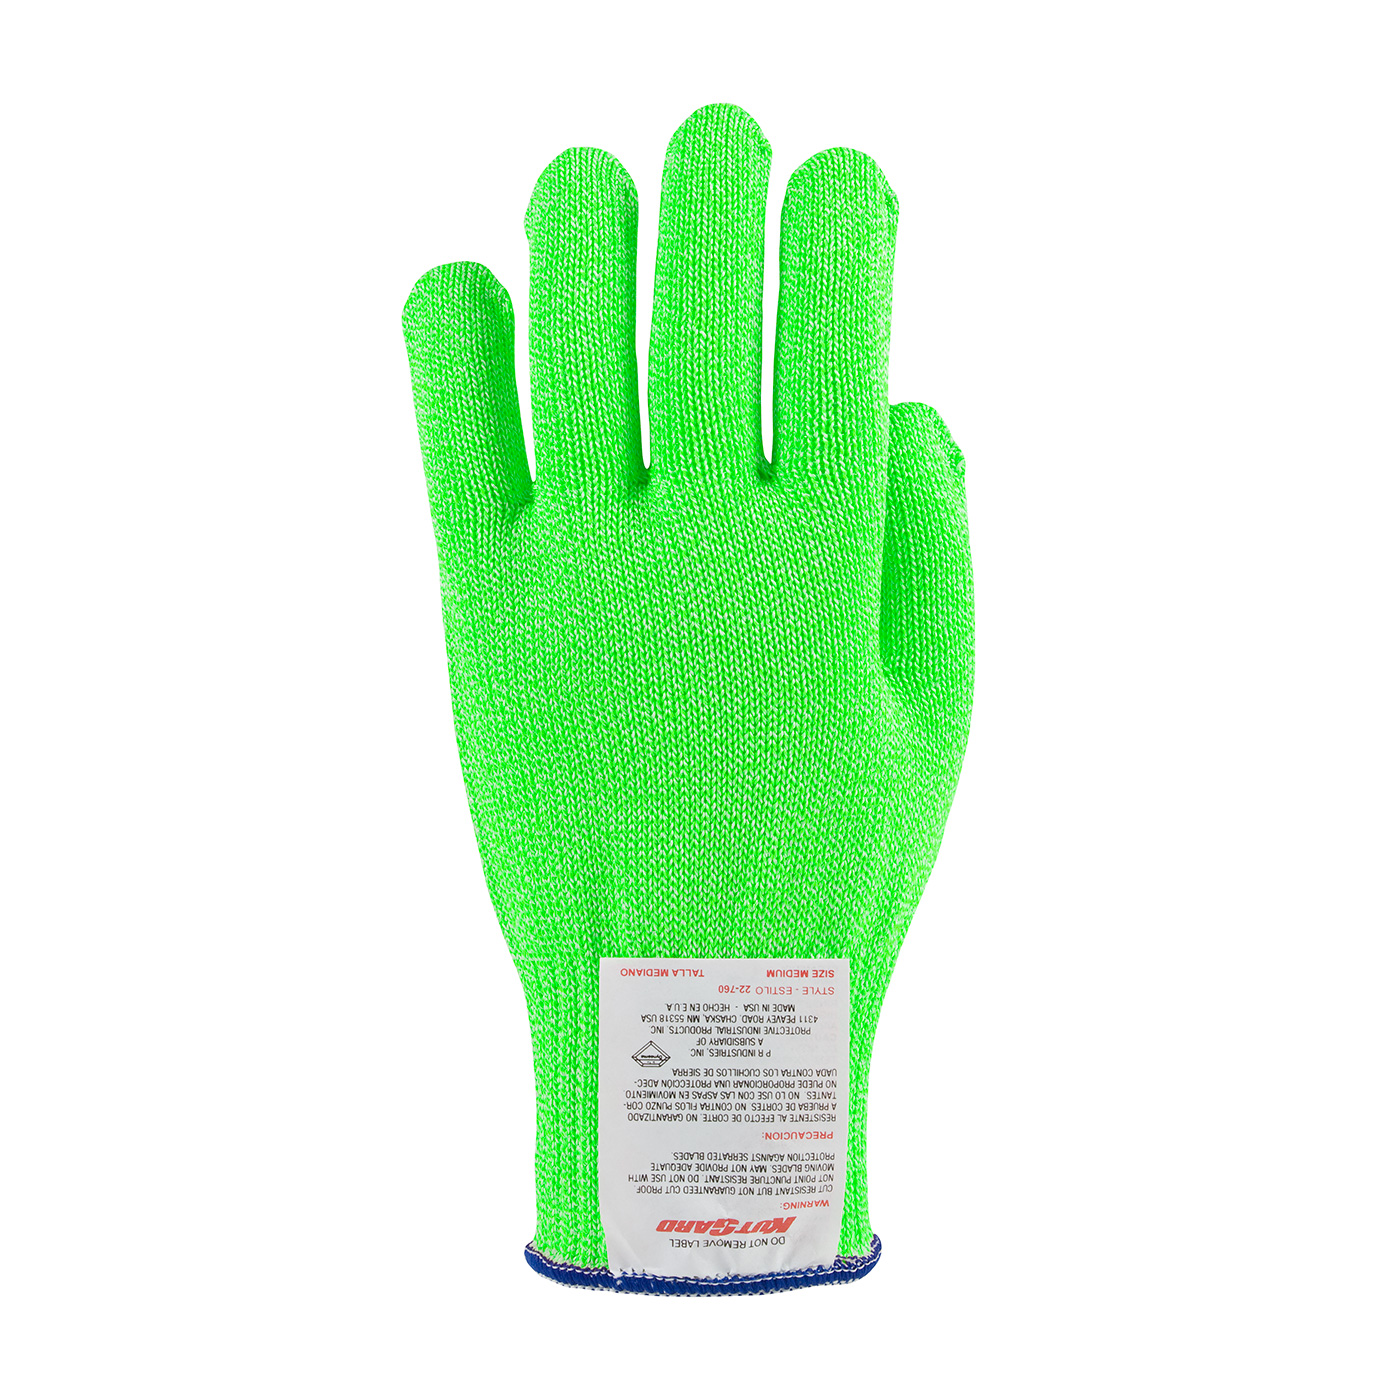 #22-760BG PIP Bright Green Kut-Gard® Dyneema® Blended Cut Level A7 Antimicrobial Glove - Medium Weight